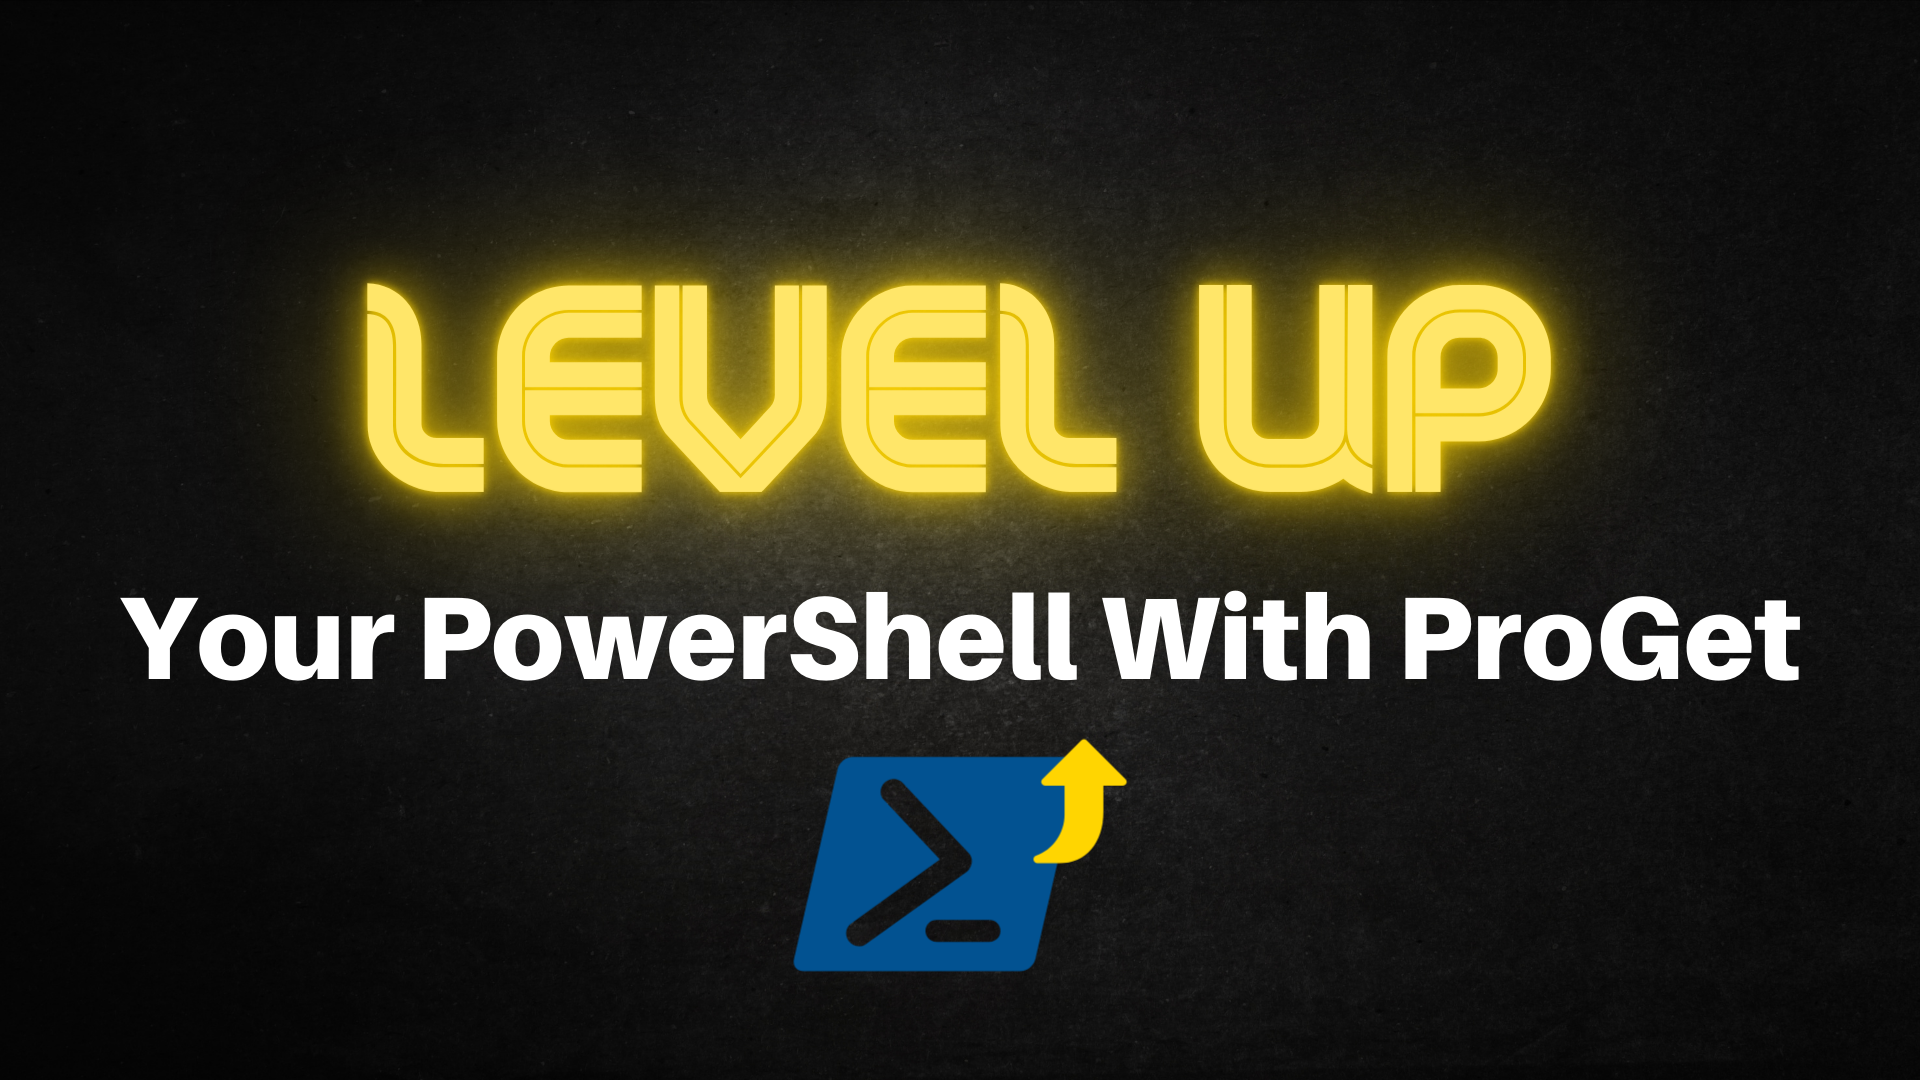 Level Up Your Powershell